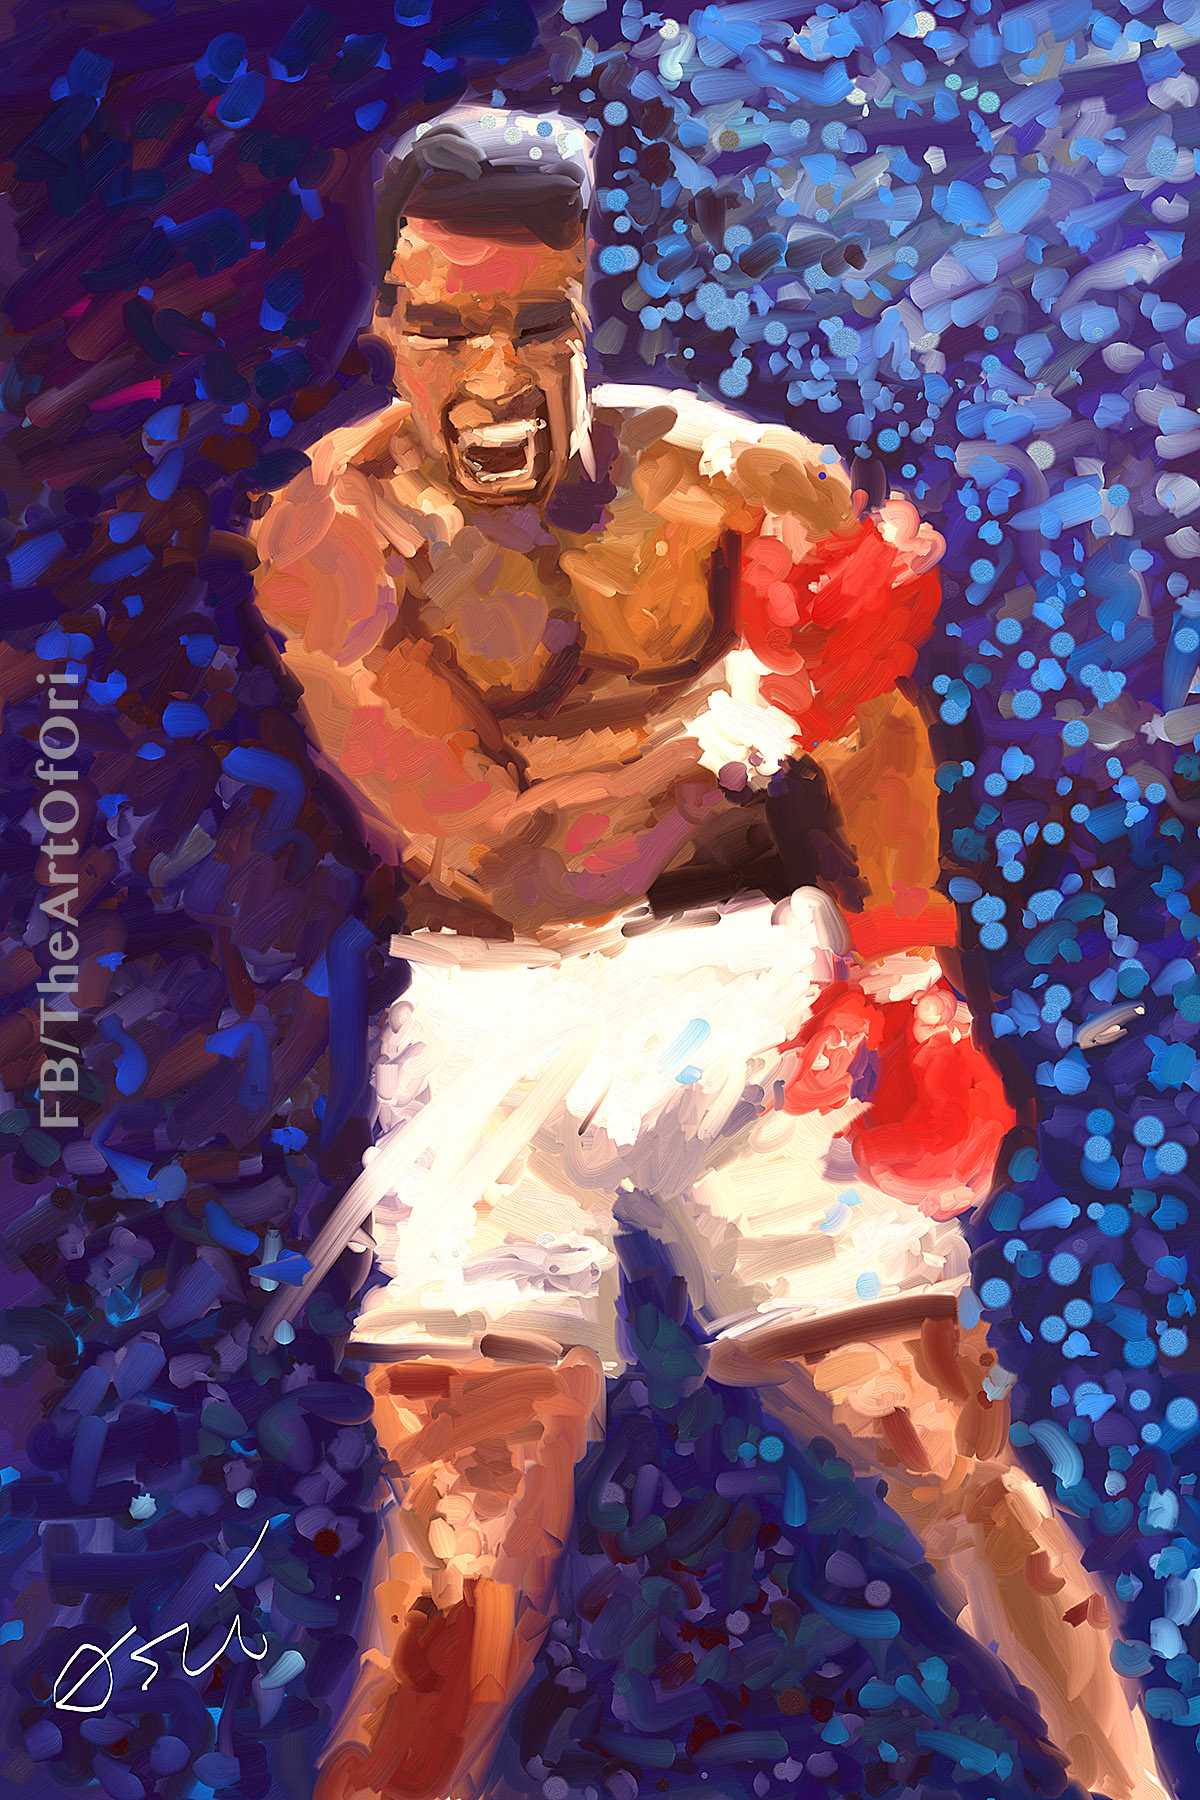 Cassius Marcellus Clay, Jr. - Muhammad Ali painting by Ori Bengal